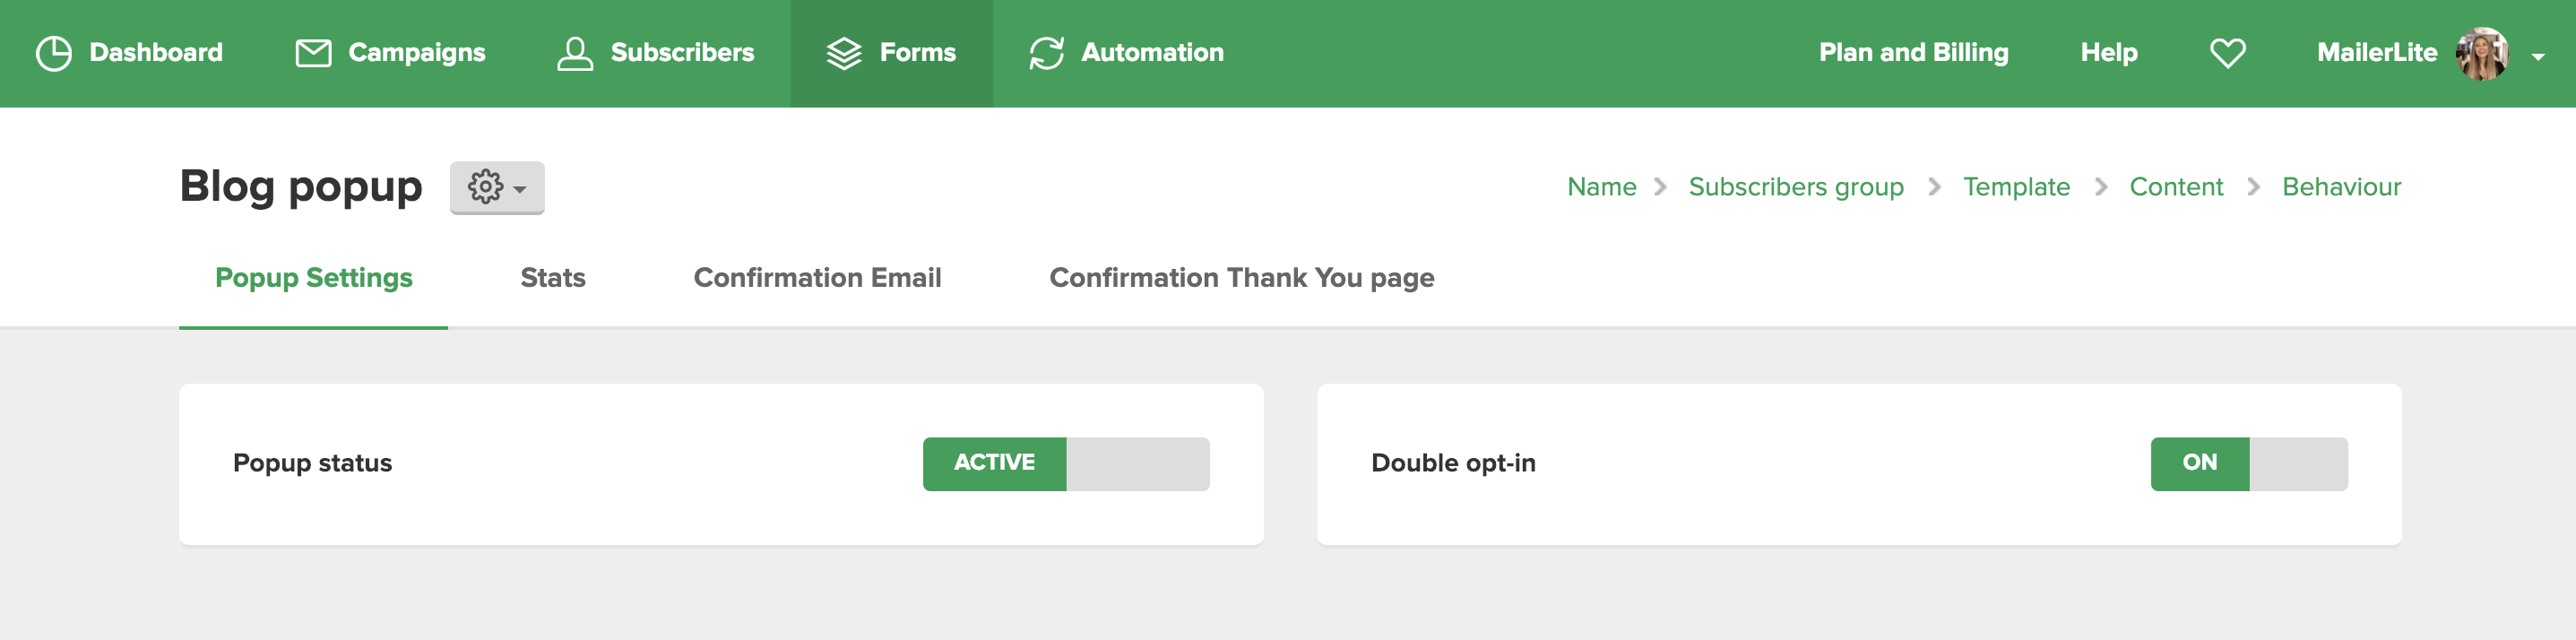 MailerLite - What is double opt-in and how does it work?